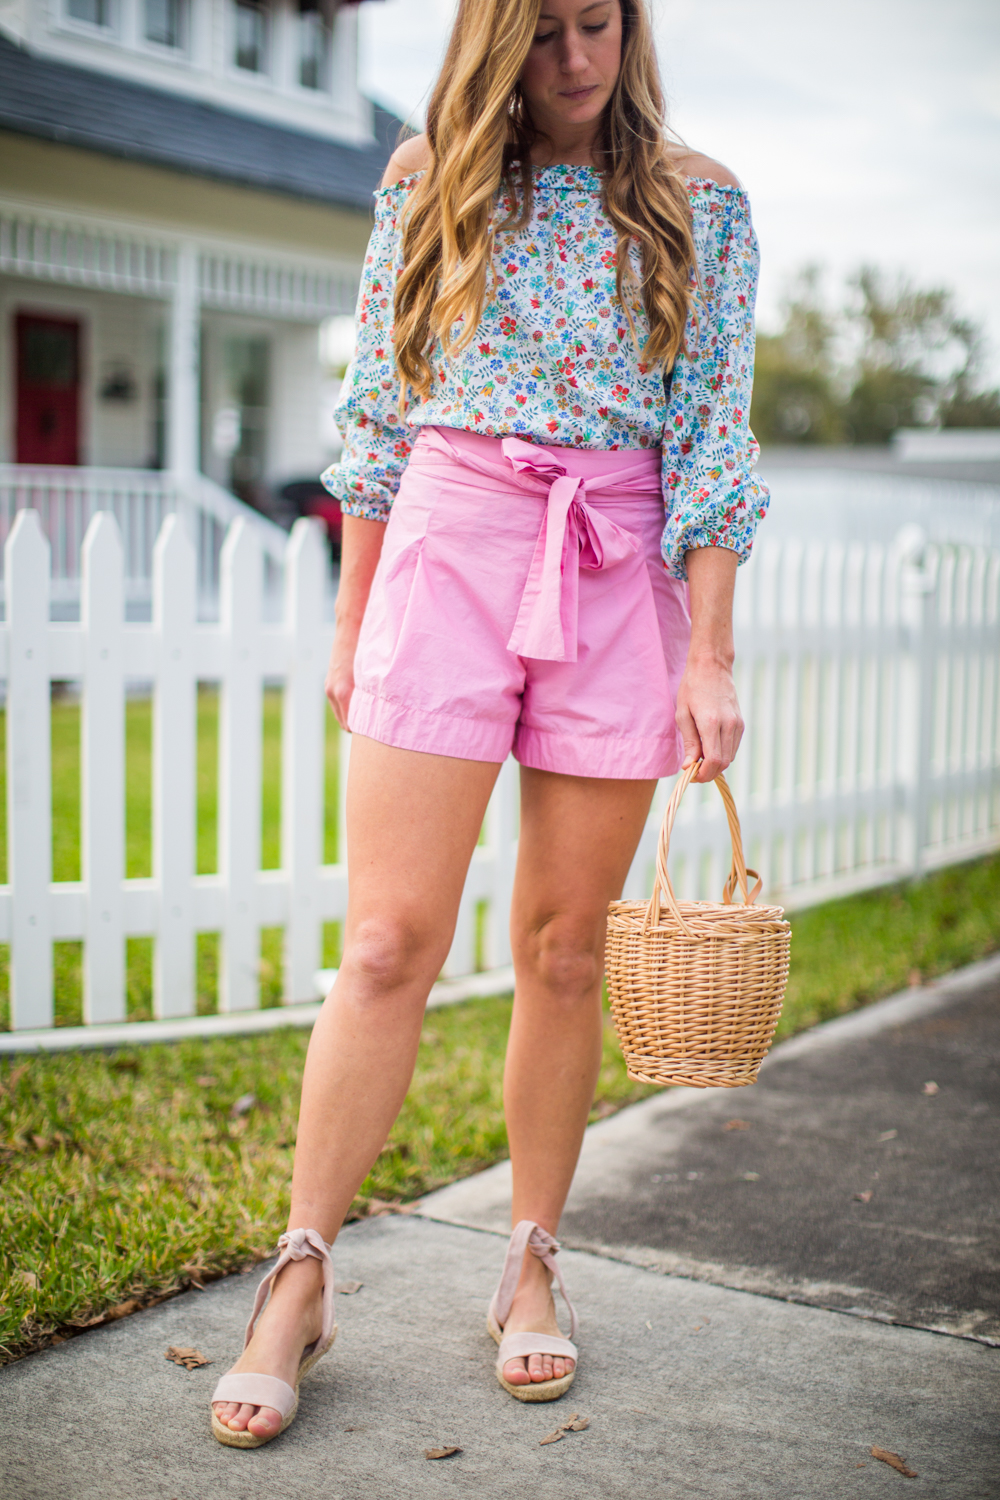 The Cutest Bow Shorts for Spring / An Easy Easter Outfit / Florals for Spring / Spring Outfit Inspiration / J.Crew Floral Top / J.Crew Pink Tie Bow Shorts / Basket Bag - Sunshine Style